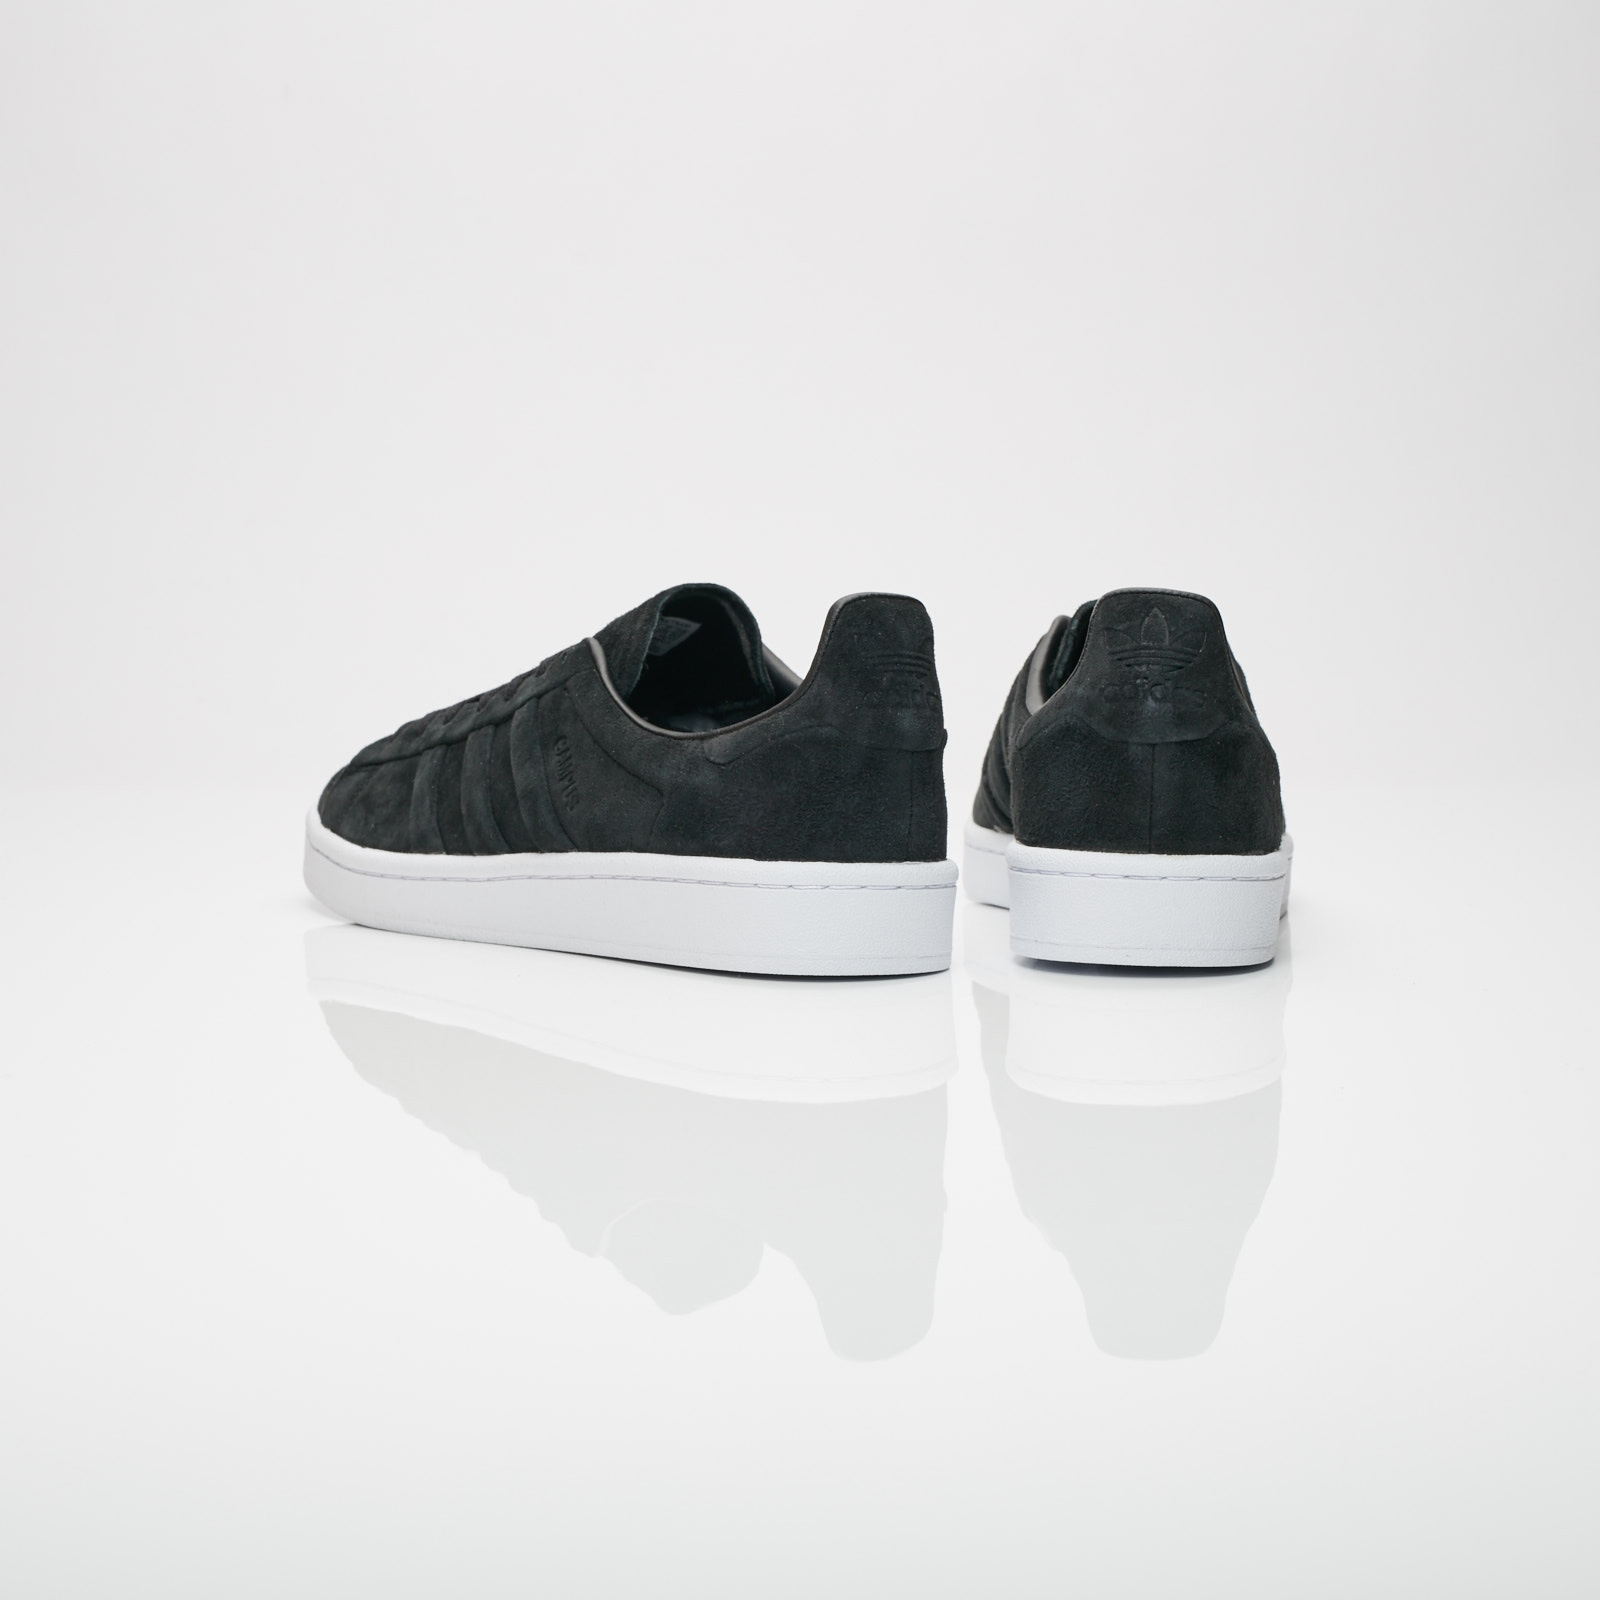 hot sale online c9a9a 6b365 adidas Originals Campus Stitch And Turn adidas Originals Campus Stitch And  Turn ...